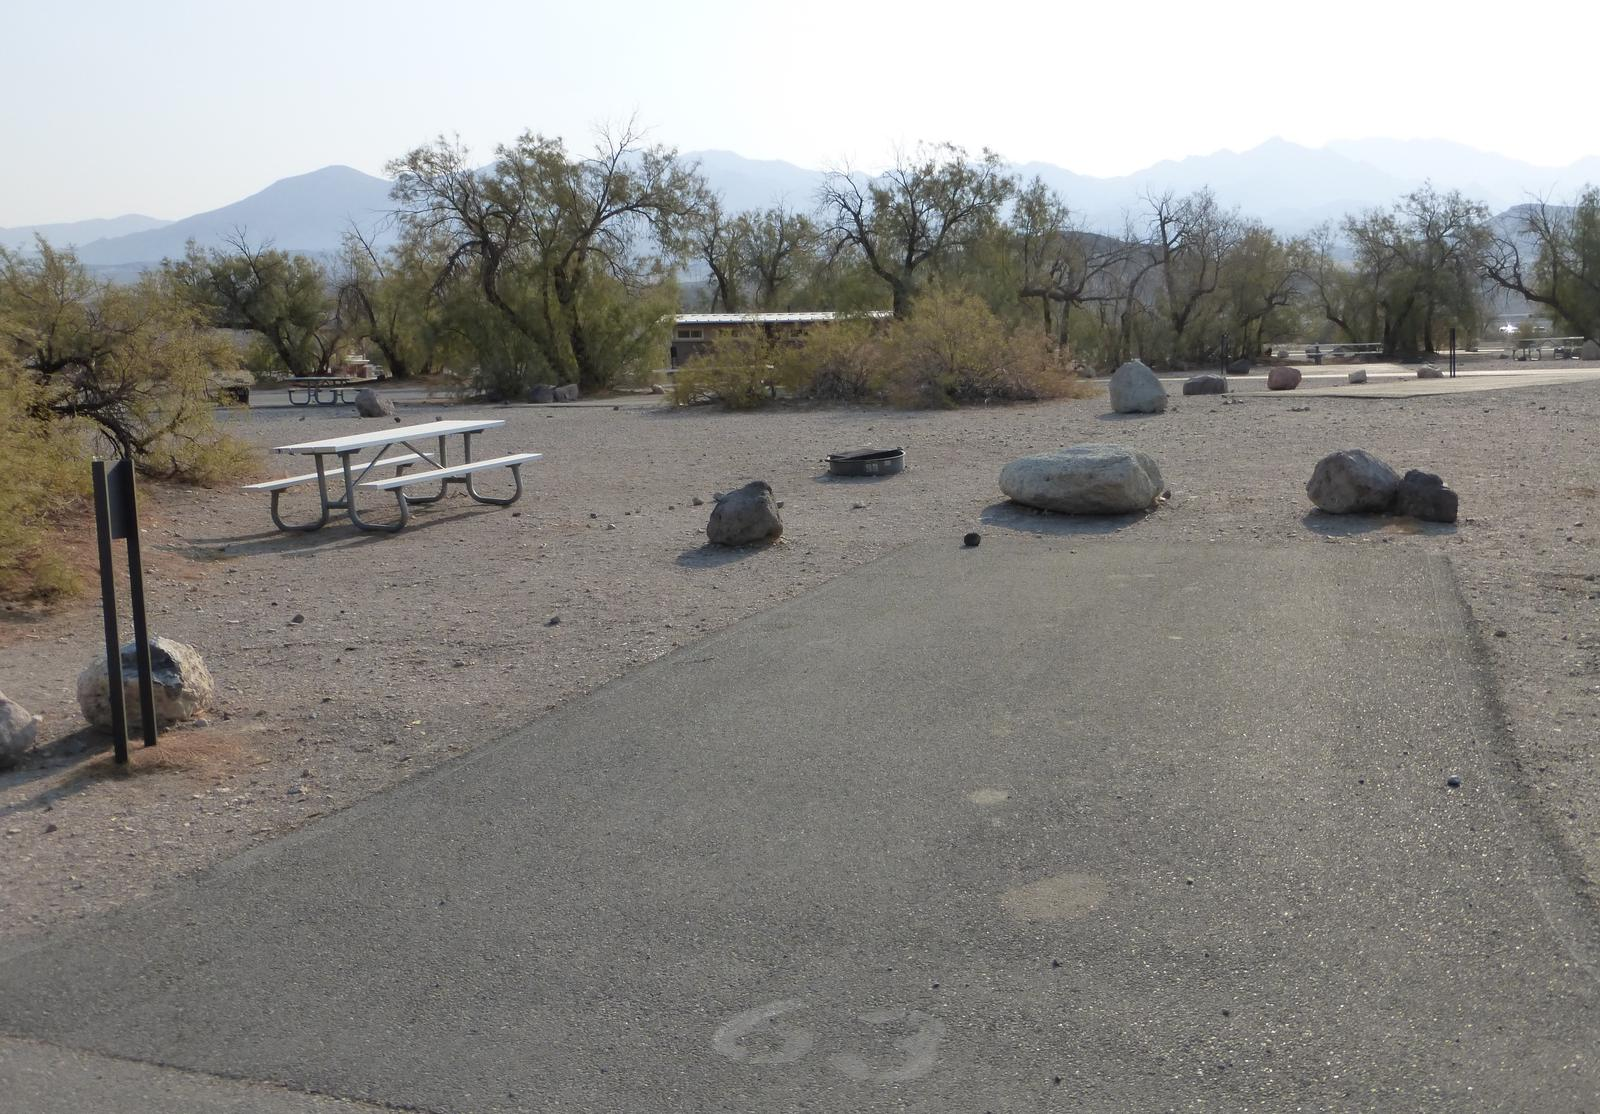 Furnace Creek Campground standard nonelectric site #63 with picnic table and fire ring.